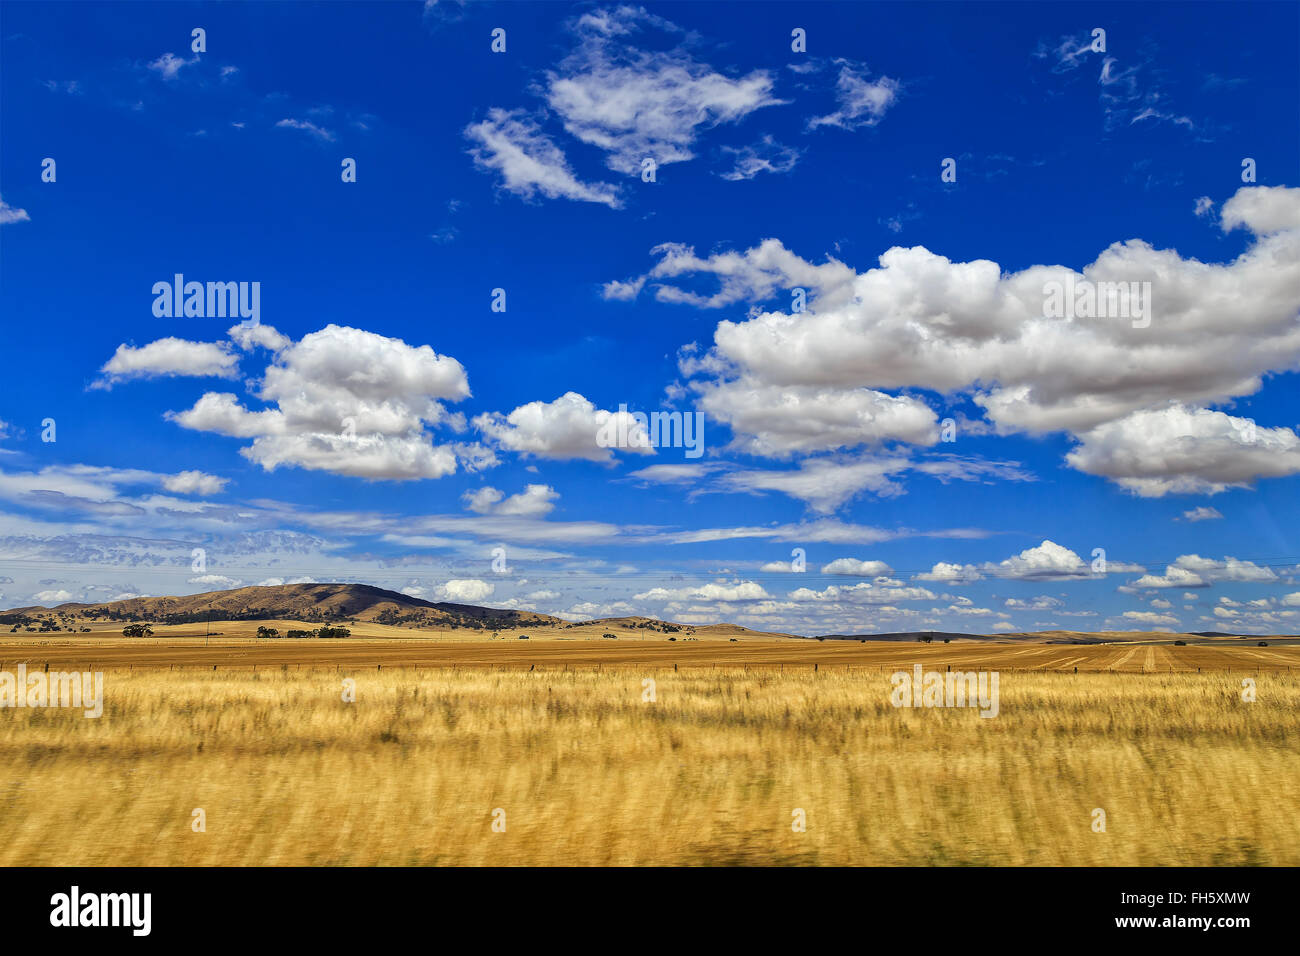 bright yellow wheat farm field with distant hills under blue sky with white clouds. Agricultural sector of South - Stock Image